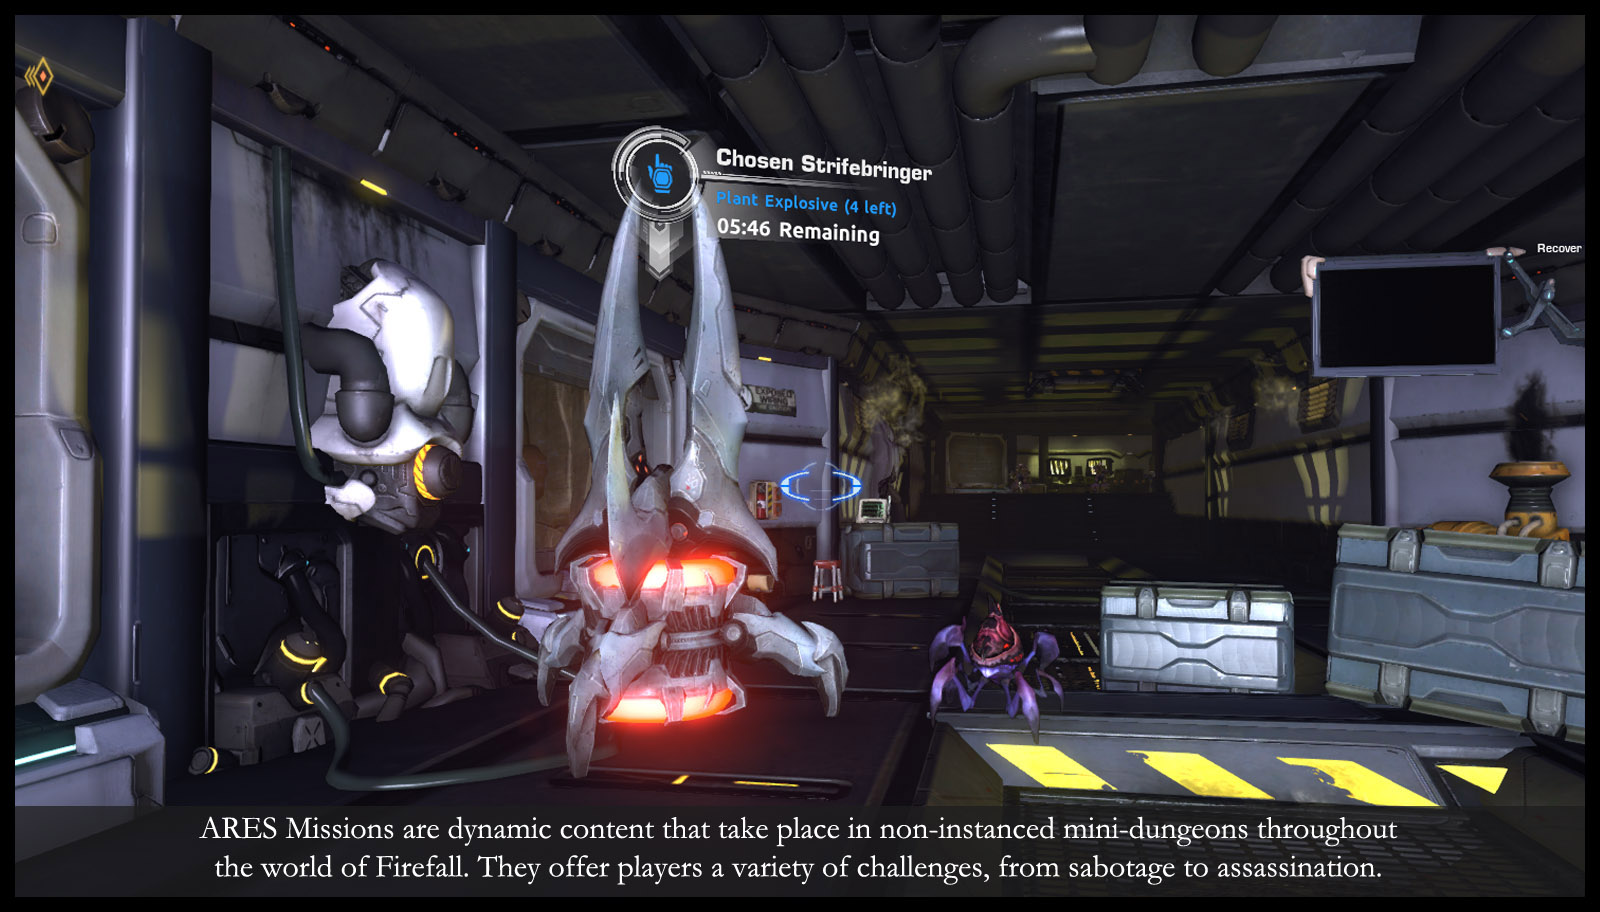 Firefall & Dyanmic Content: ARES Missions